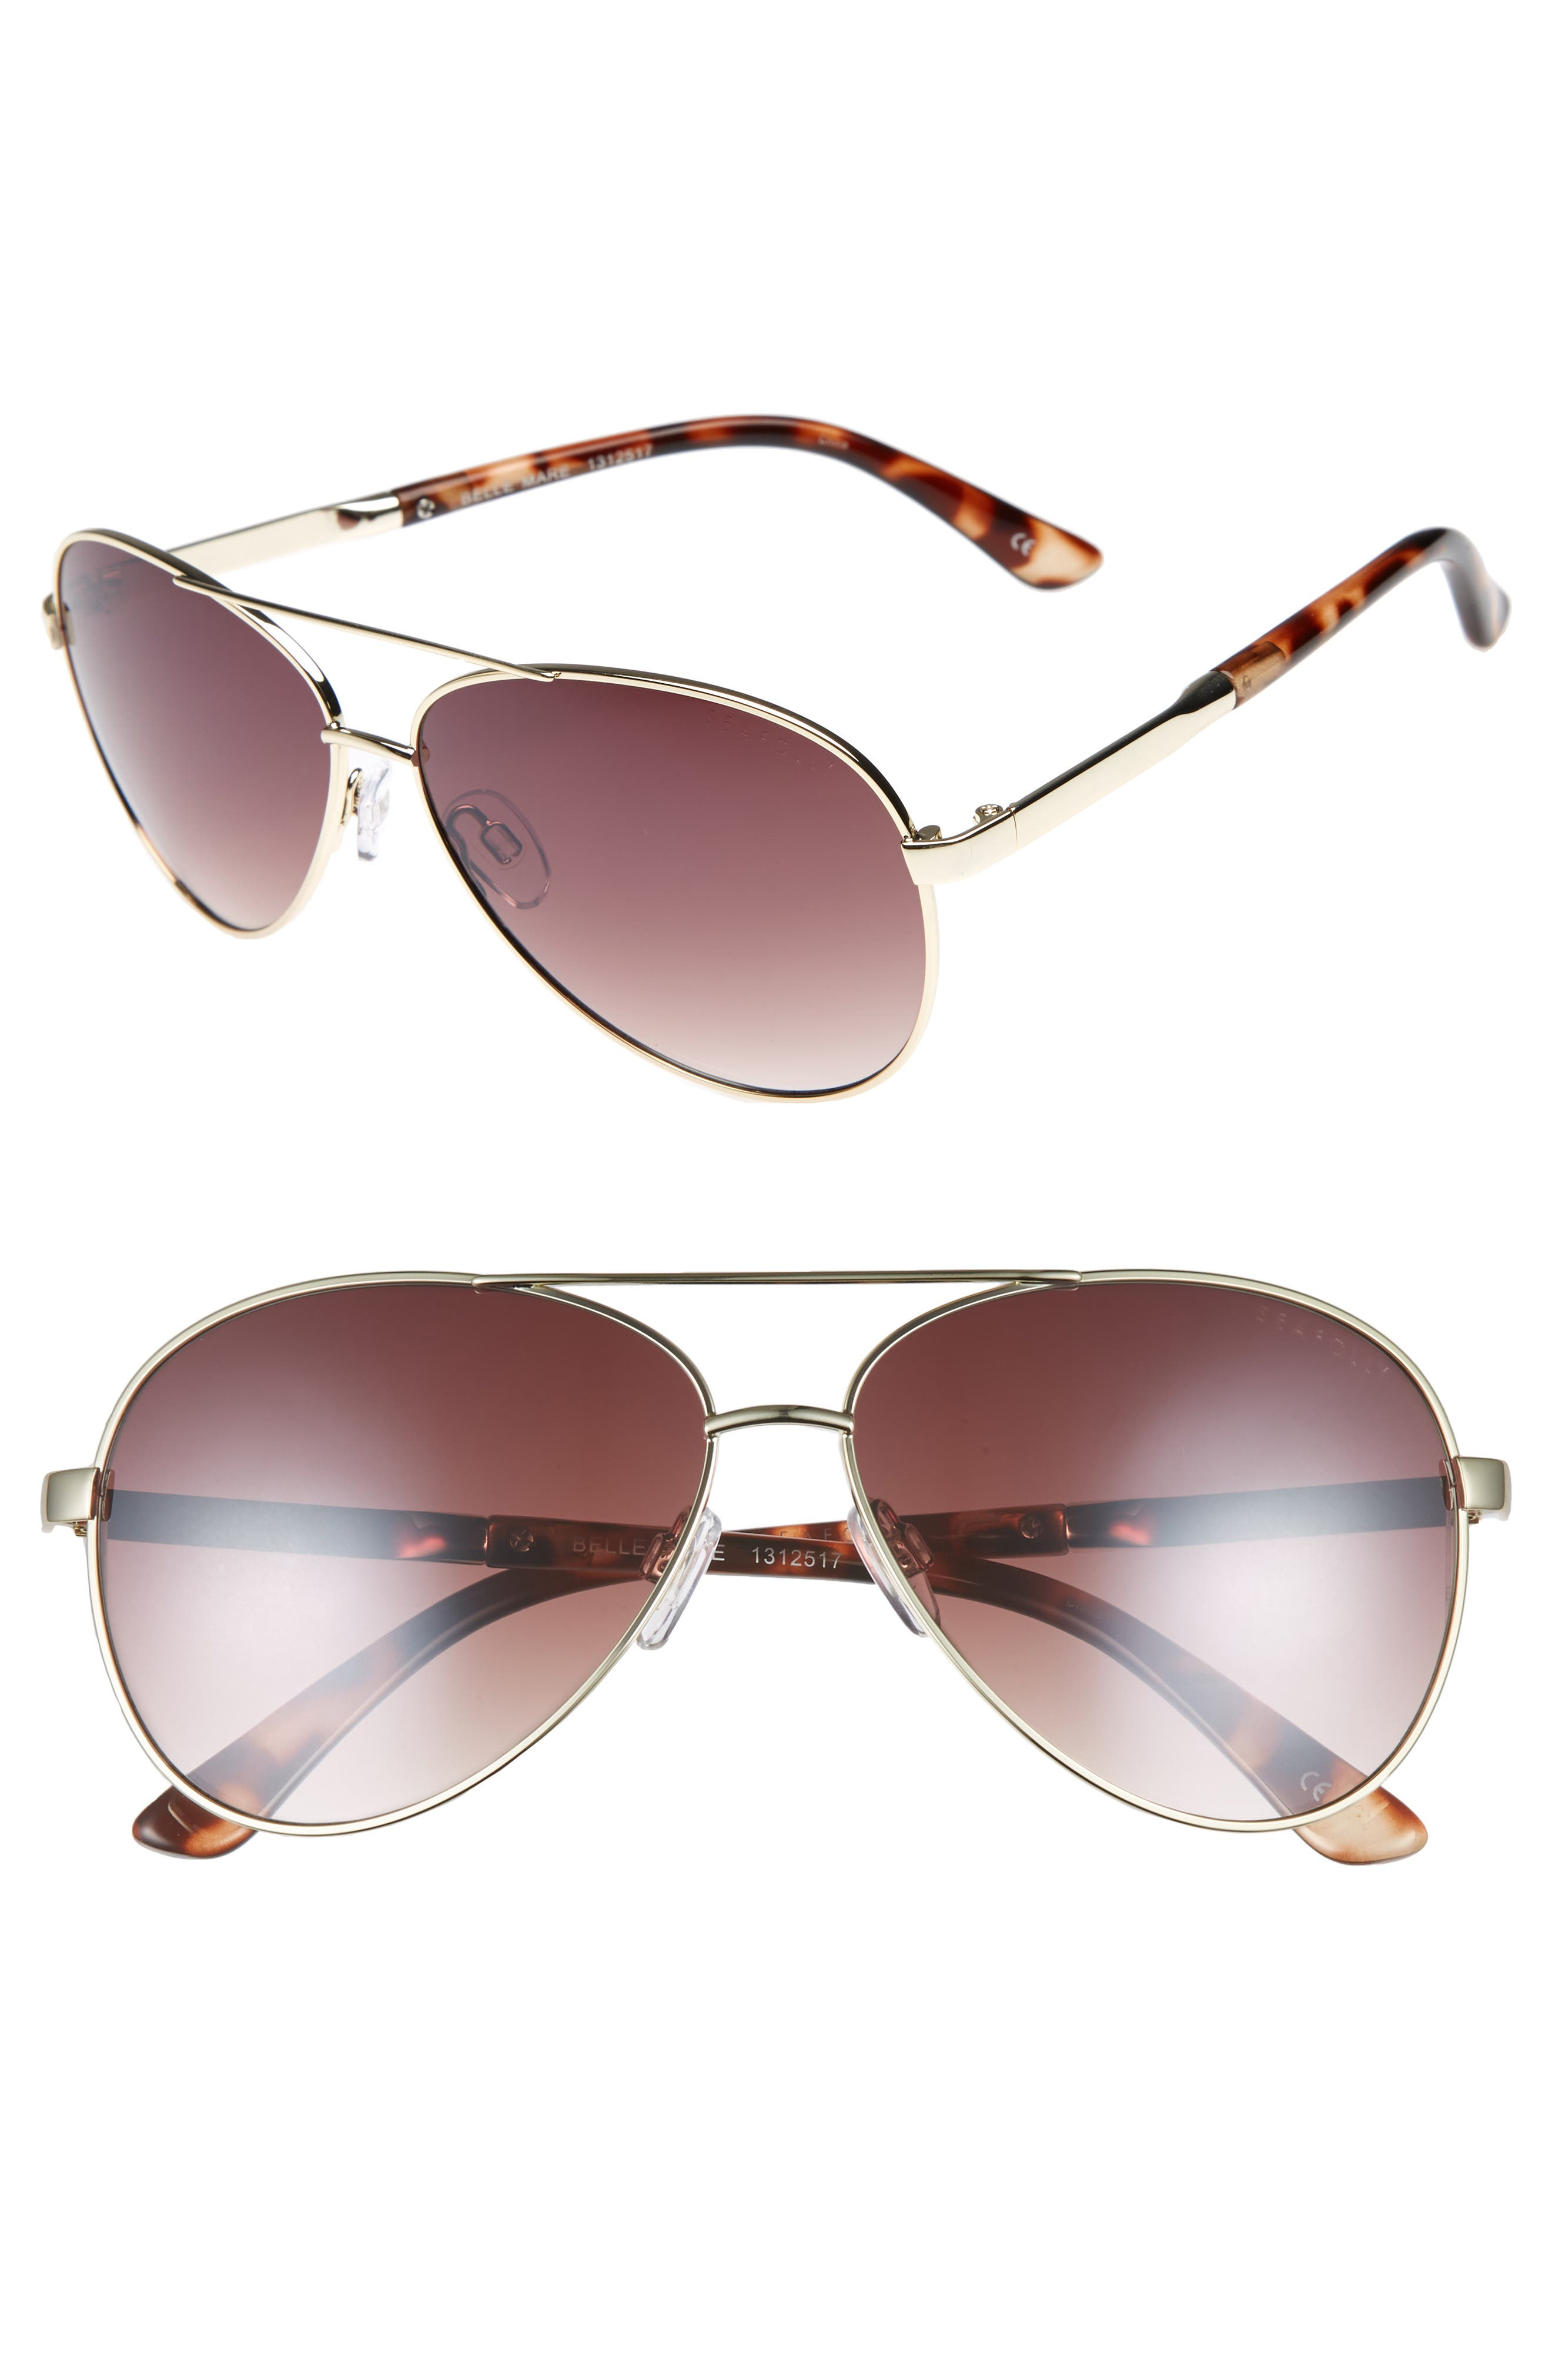 Belle Mare 54mm Aviator Sunglasses,                             Main thumbnail 1, color,                             GOLD